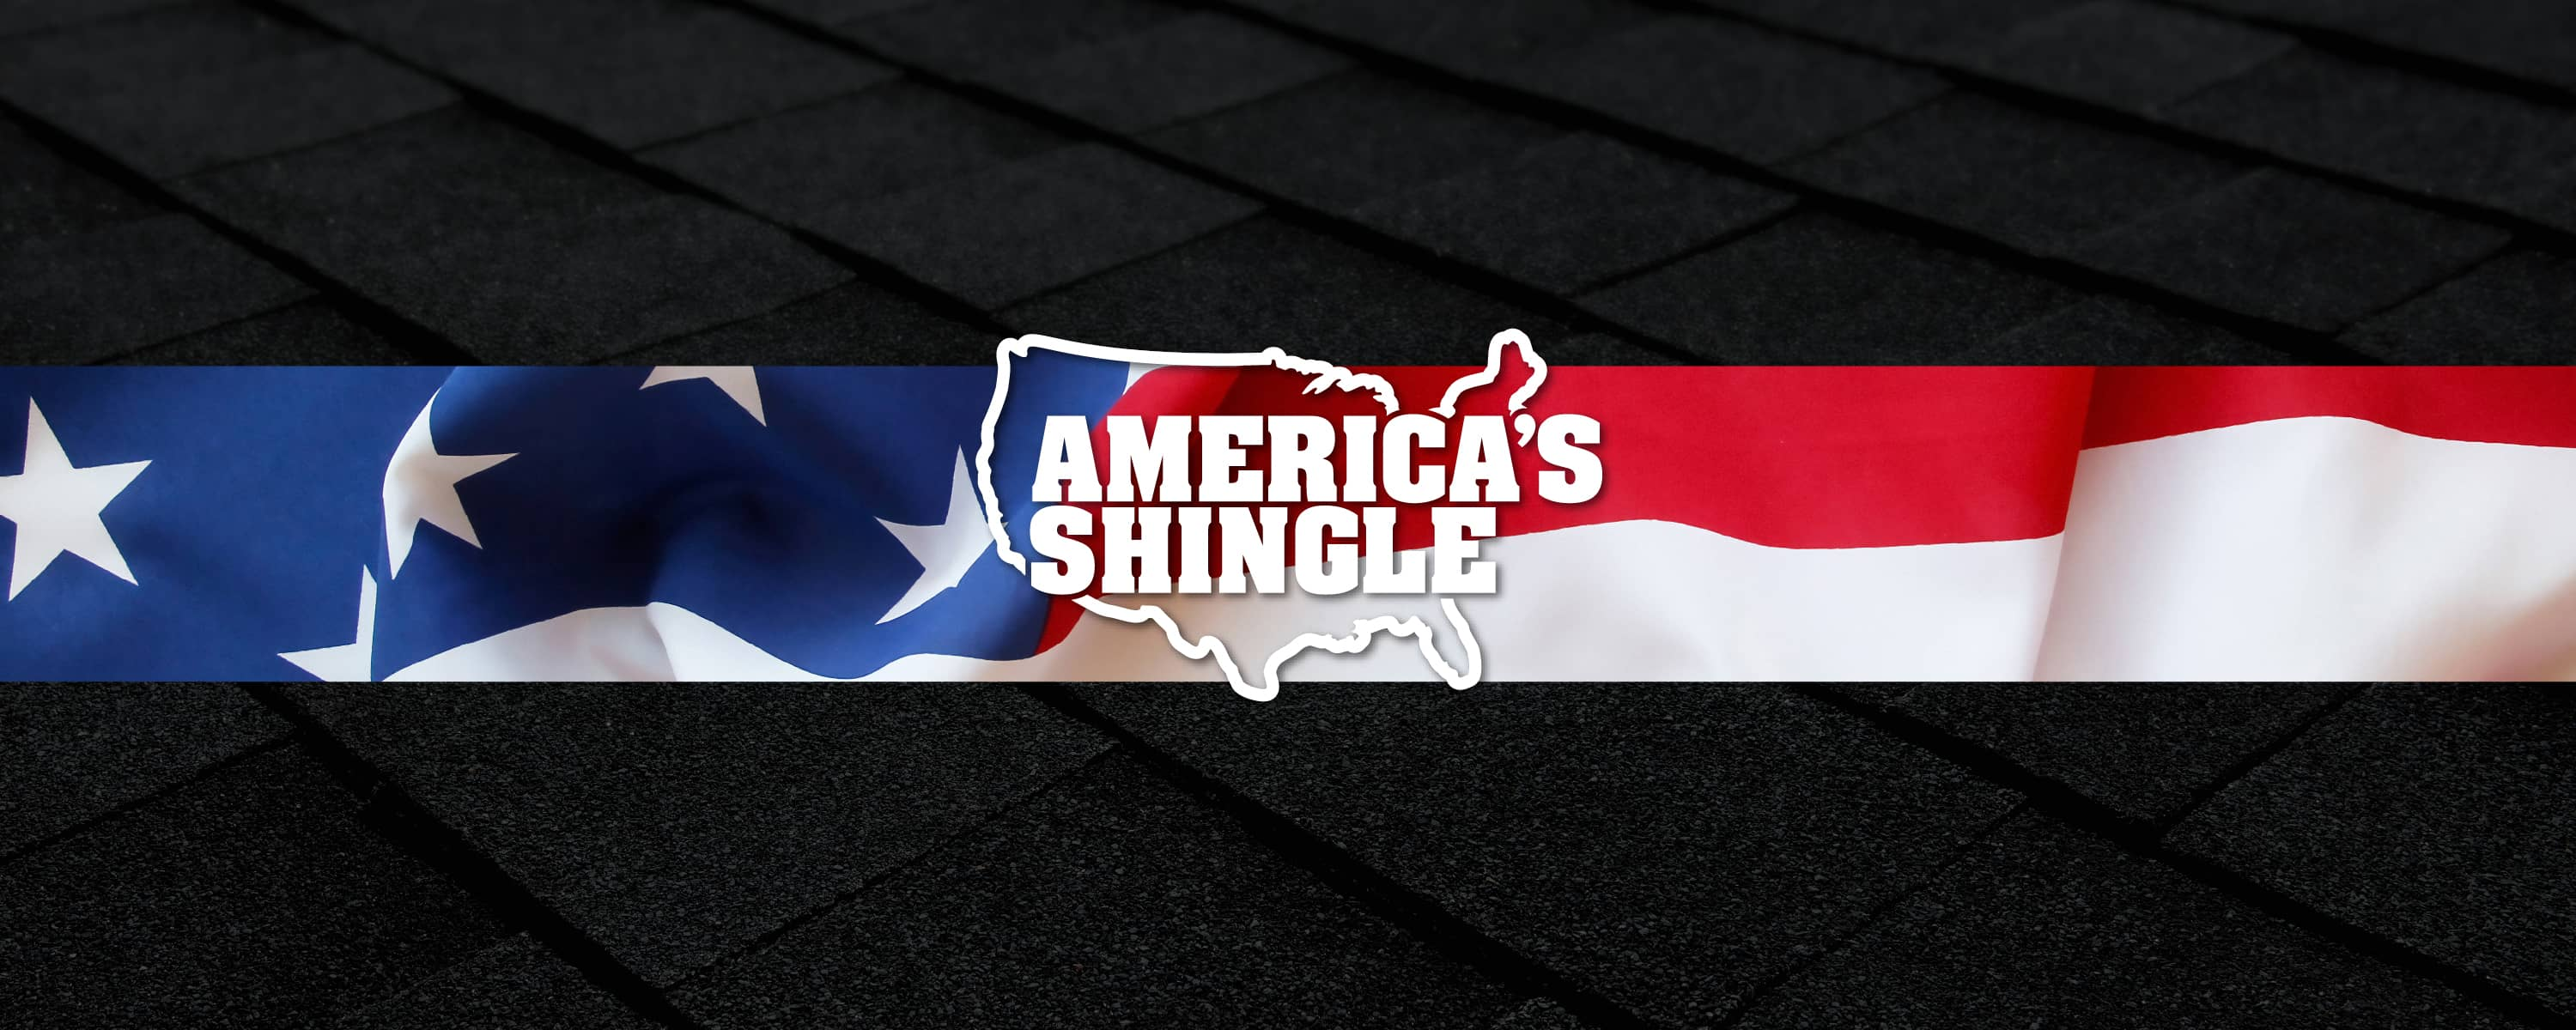 AmericasShingle